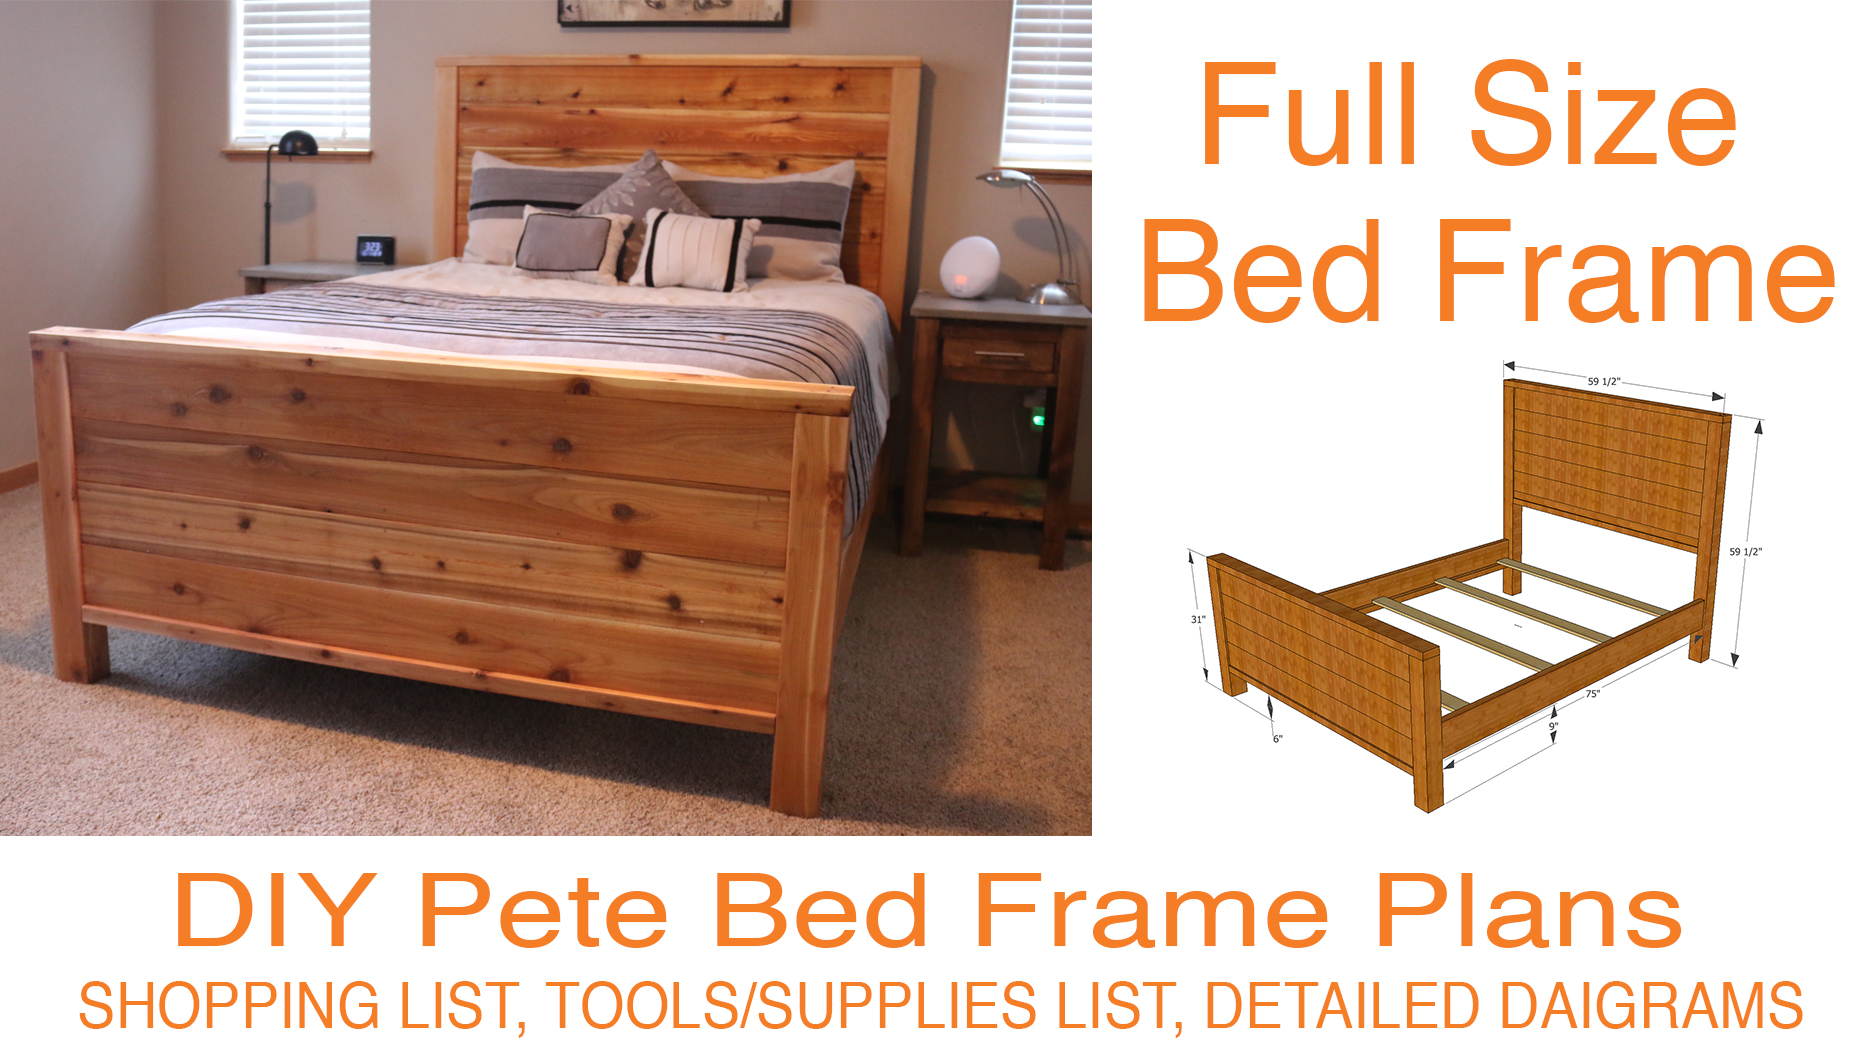 Full Size Bed Frame.Diy Bed Frame Plans How To Make A Bed Frame With Diy Pete